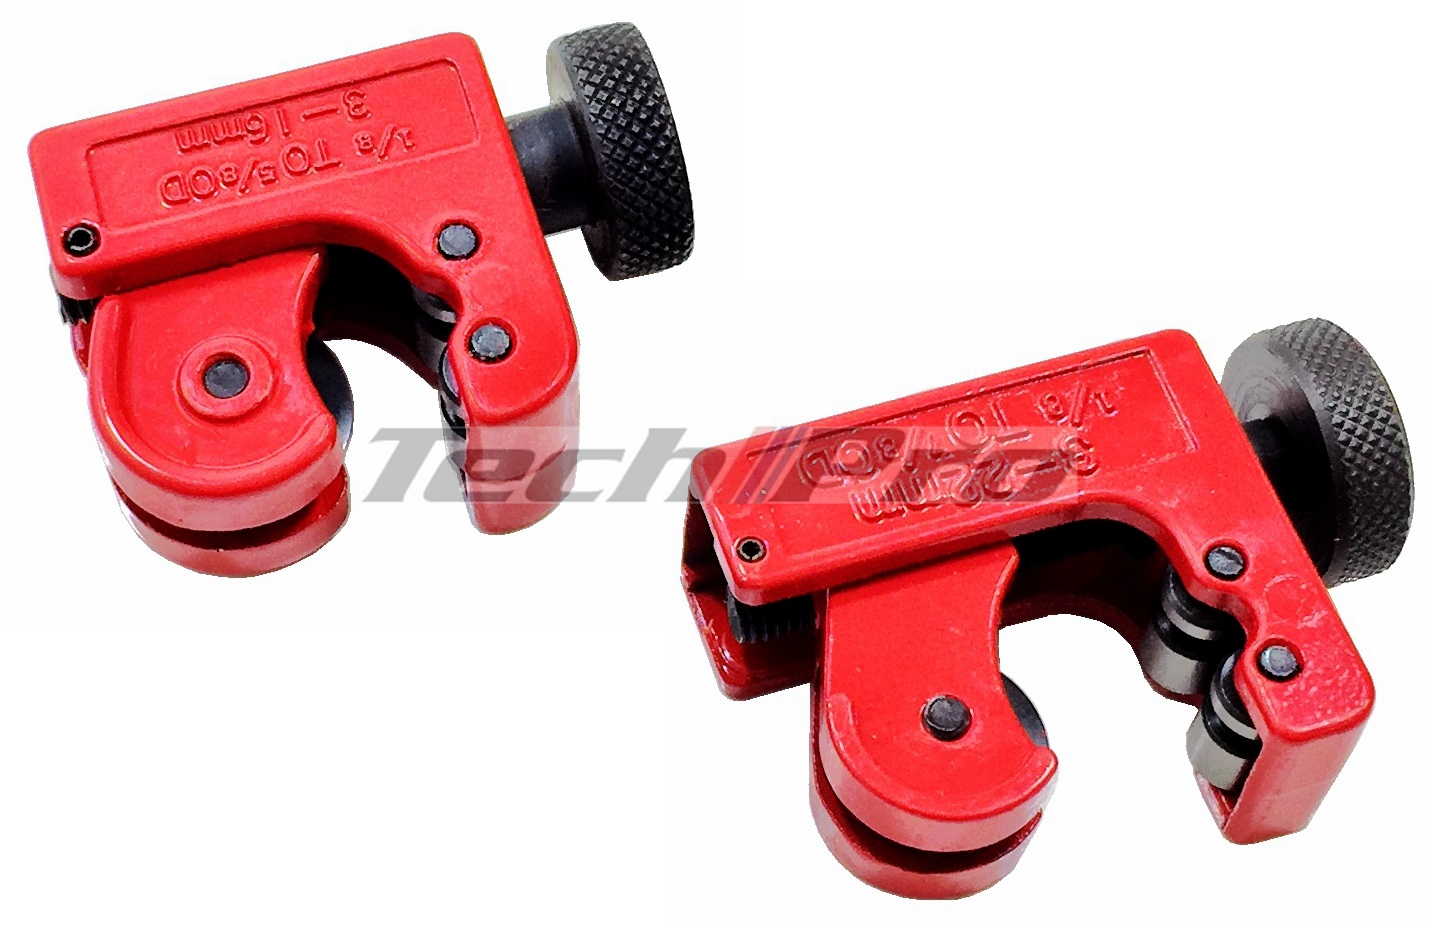 BS-025 - Mini Tube Cutter